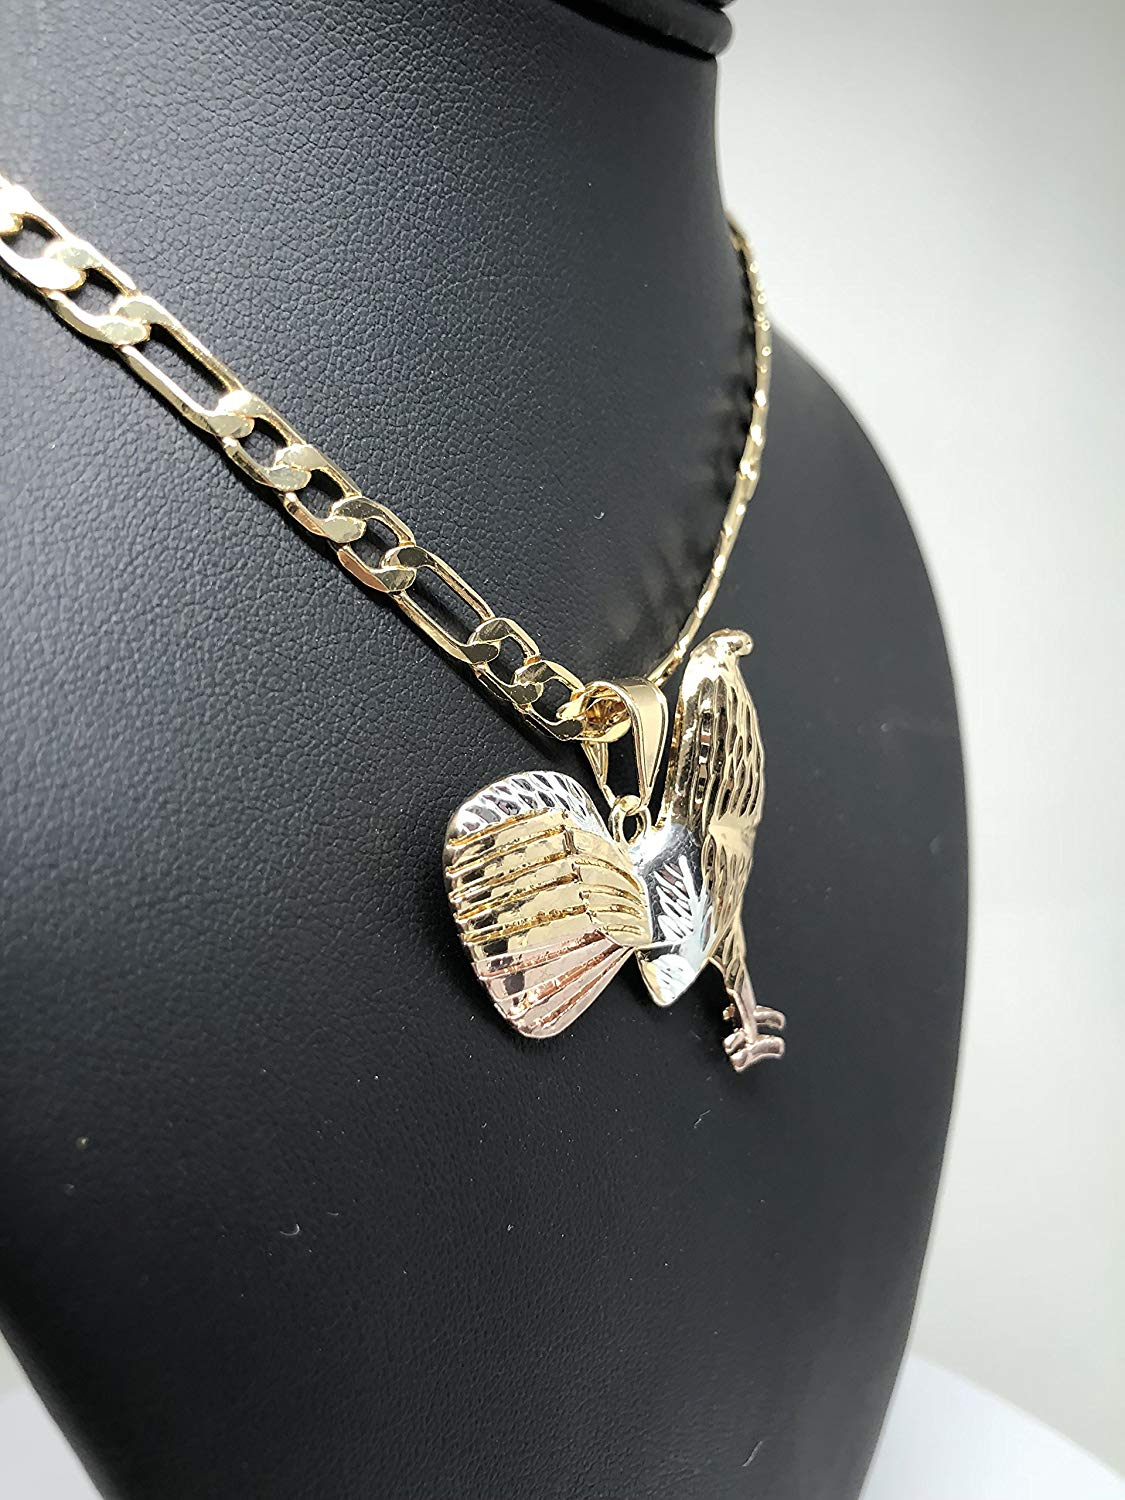 "Gold Plated Tri-Color Chicken Rooster Pendant Necklace Figaro 26"" Gallo Medalla Oro Laminado - Fran & Co. Jewelry"